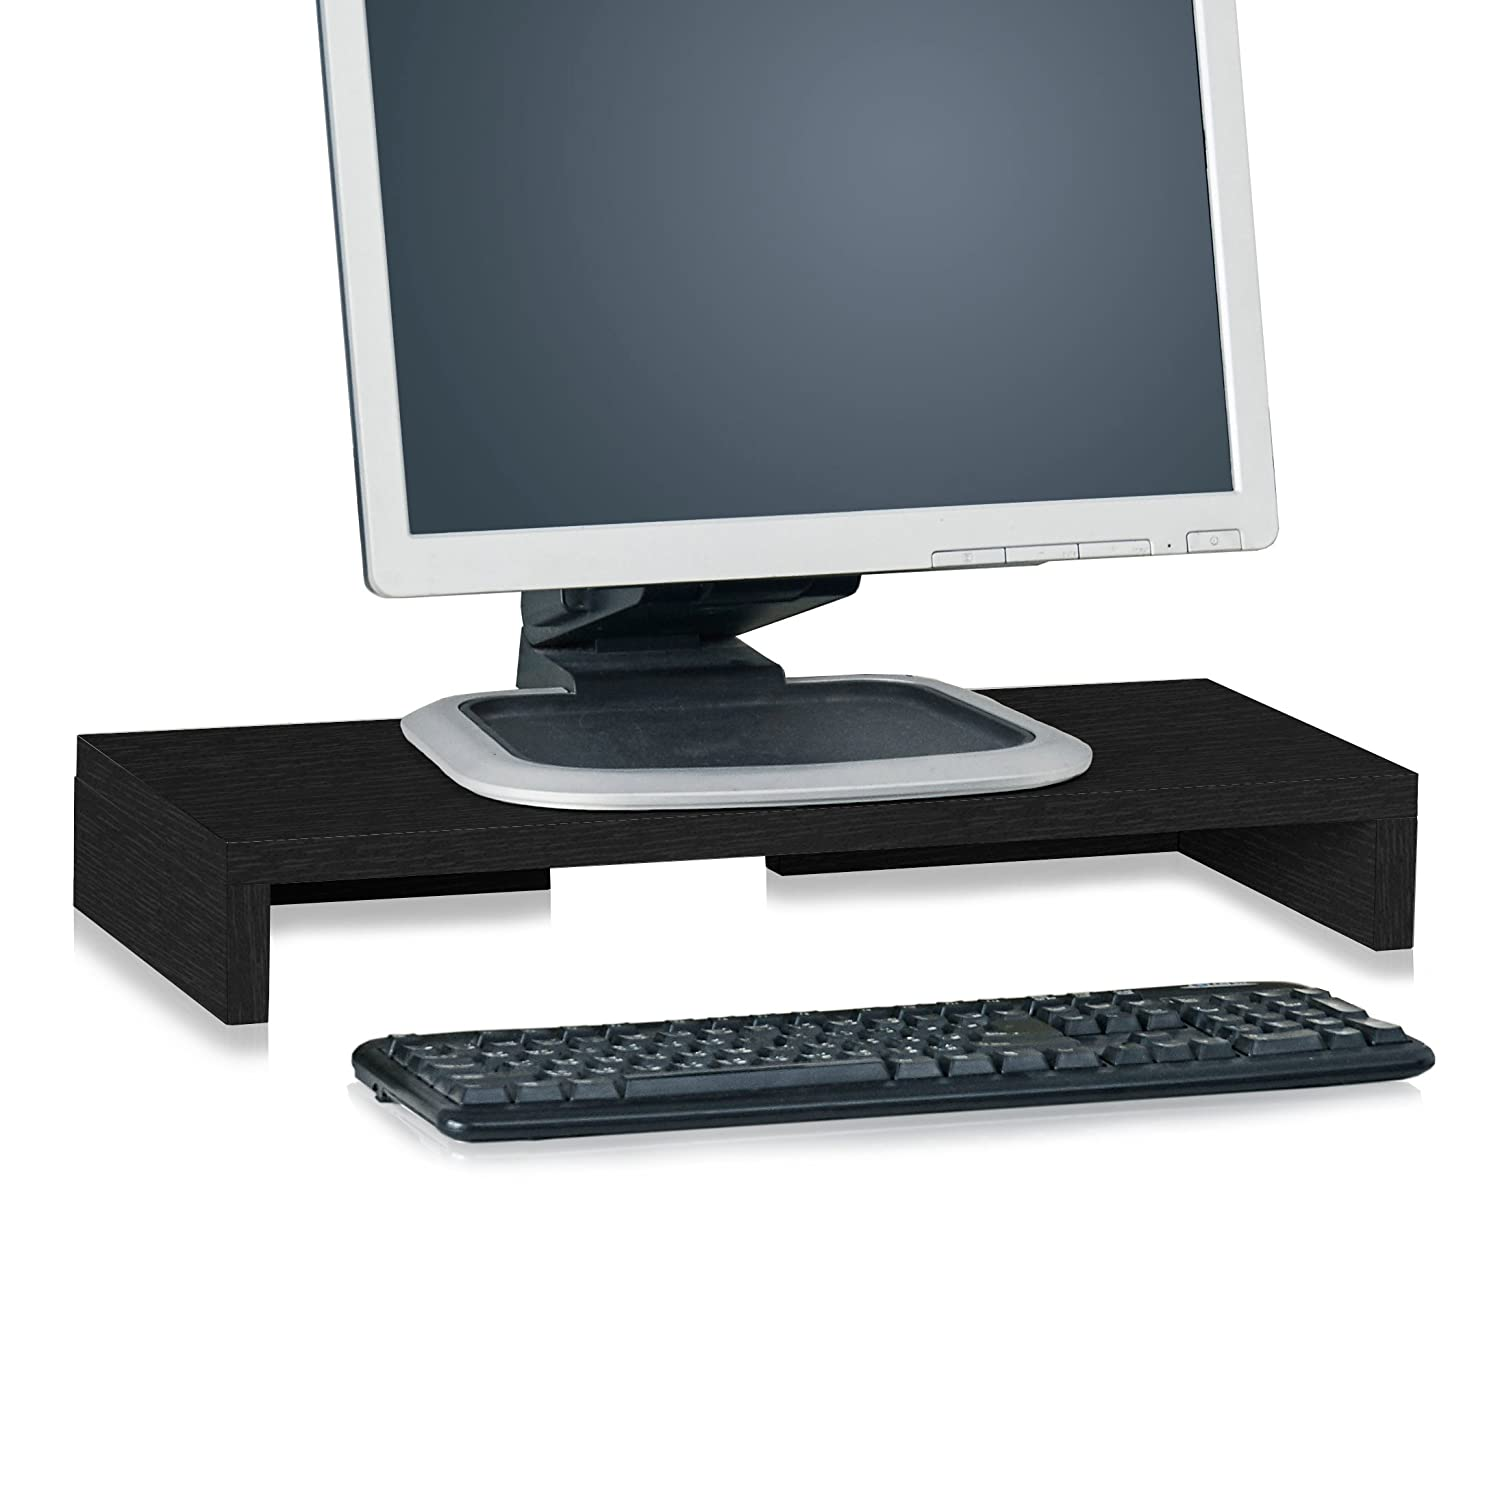 Way Basics Computer Monitor Stand, TV PC Laptop Computer Screen Stand Riser, Desktop Stand Storage Organizer 9.8 L x 19.7 W x 3.1 H, Black (Made from eco-Friendly Non Toxic zBoard paperboard)